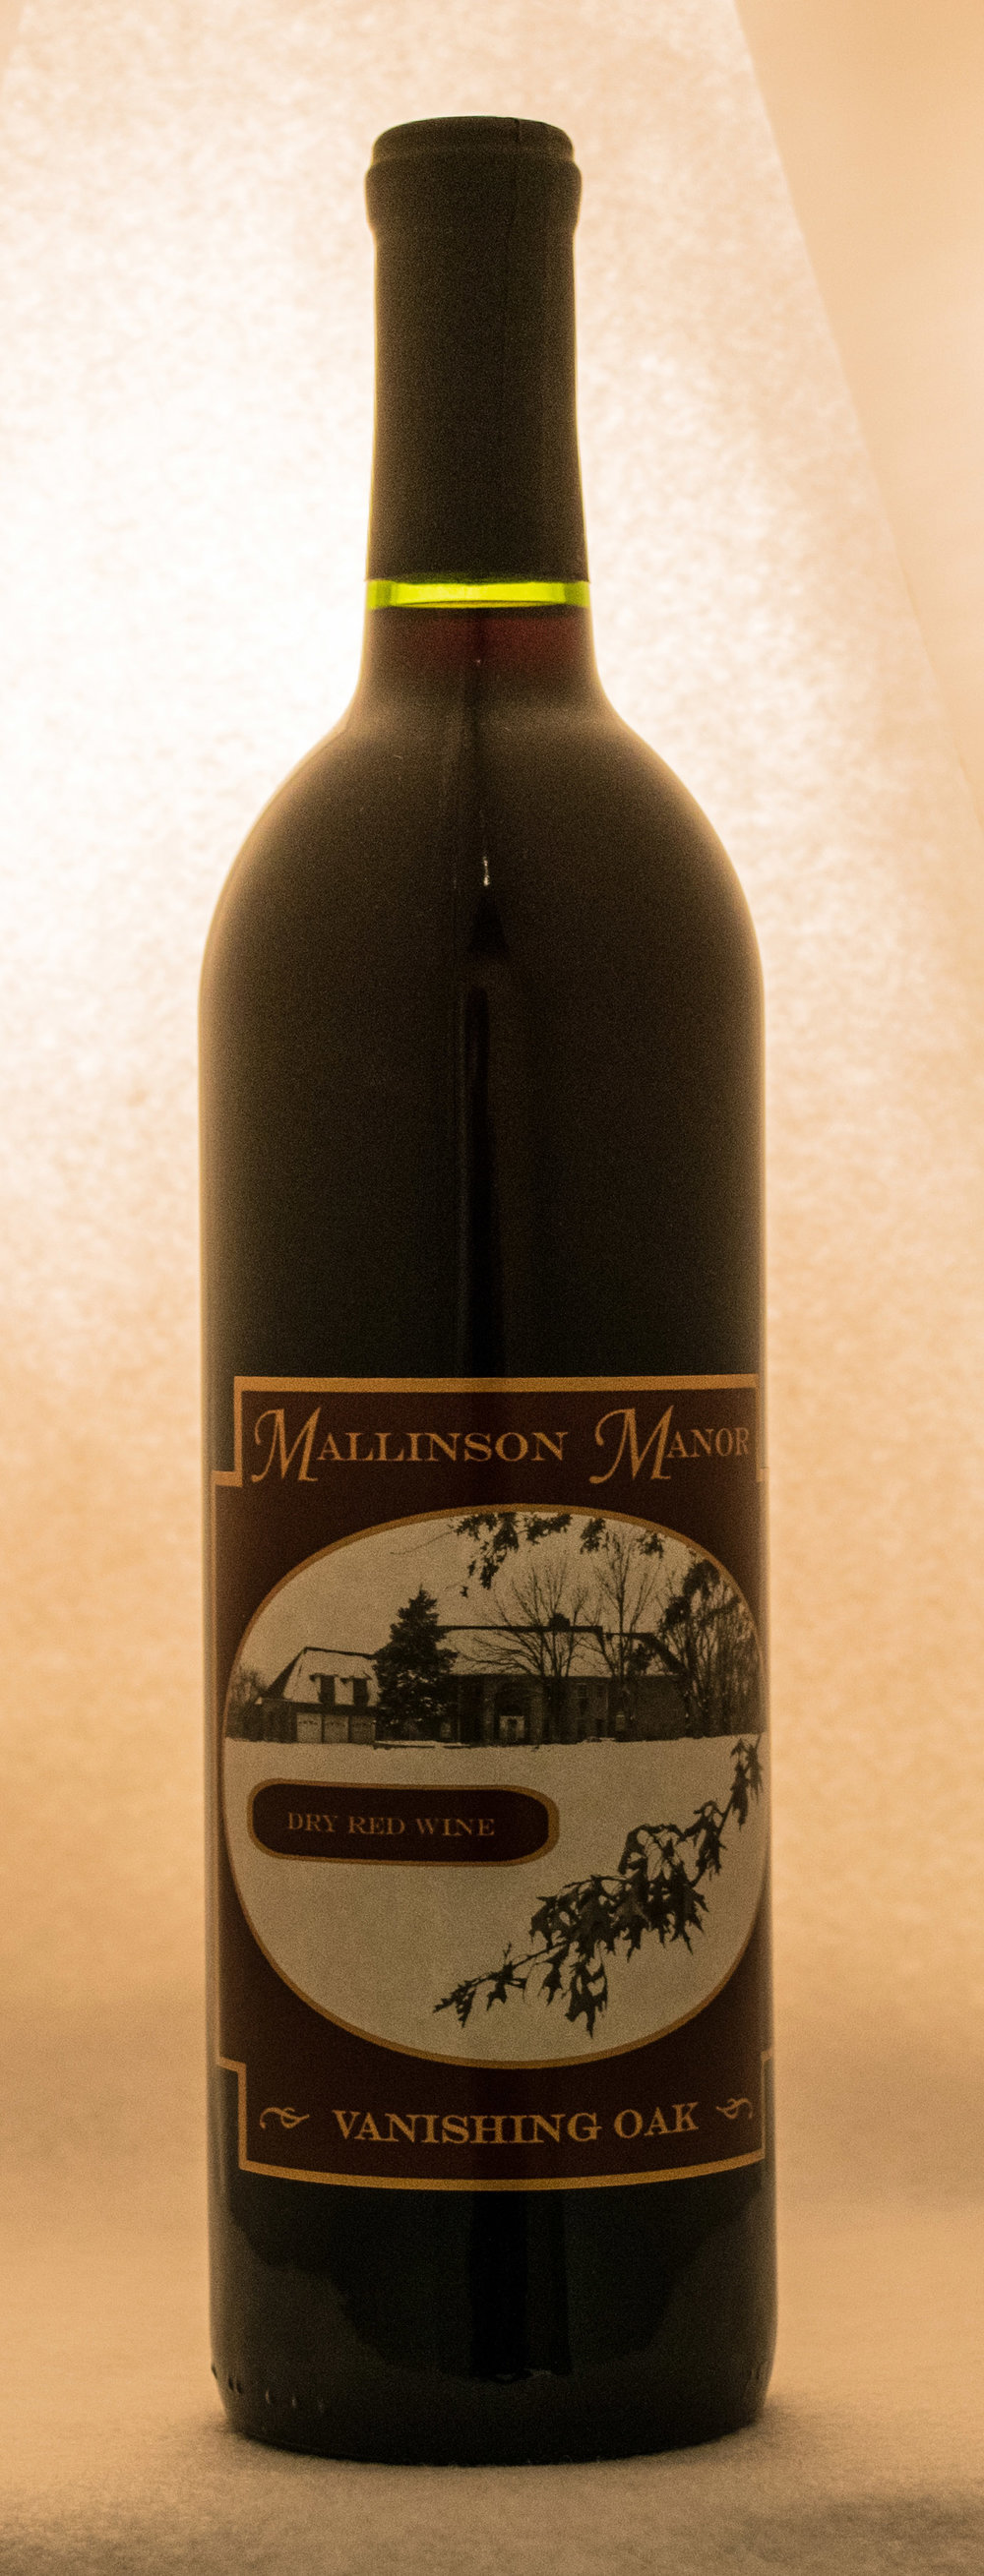 Vanishing.Oak.Dry.Red.Wine.Mallinson.Vineyard.and.Hall.Sugar.Creek.MO.jpg